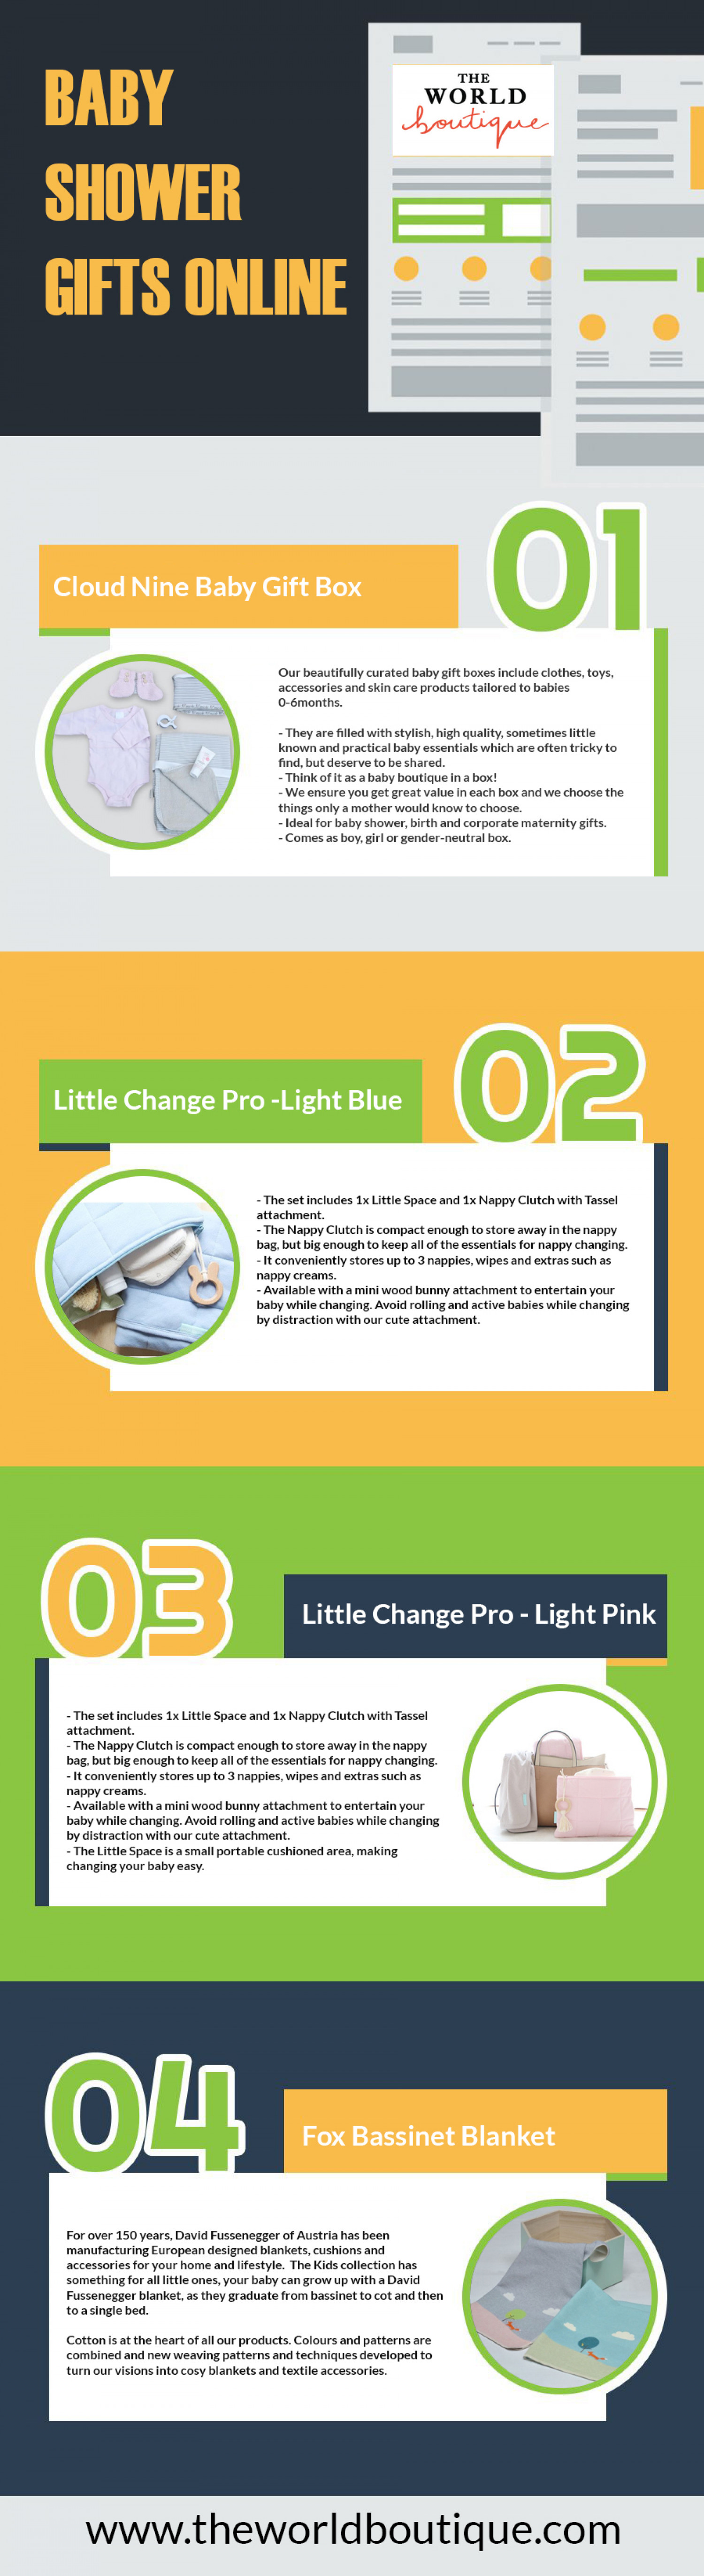 Baby Shower Gifts Online Infographic